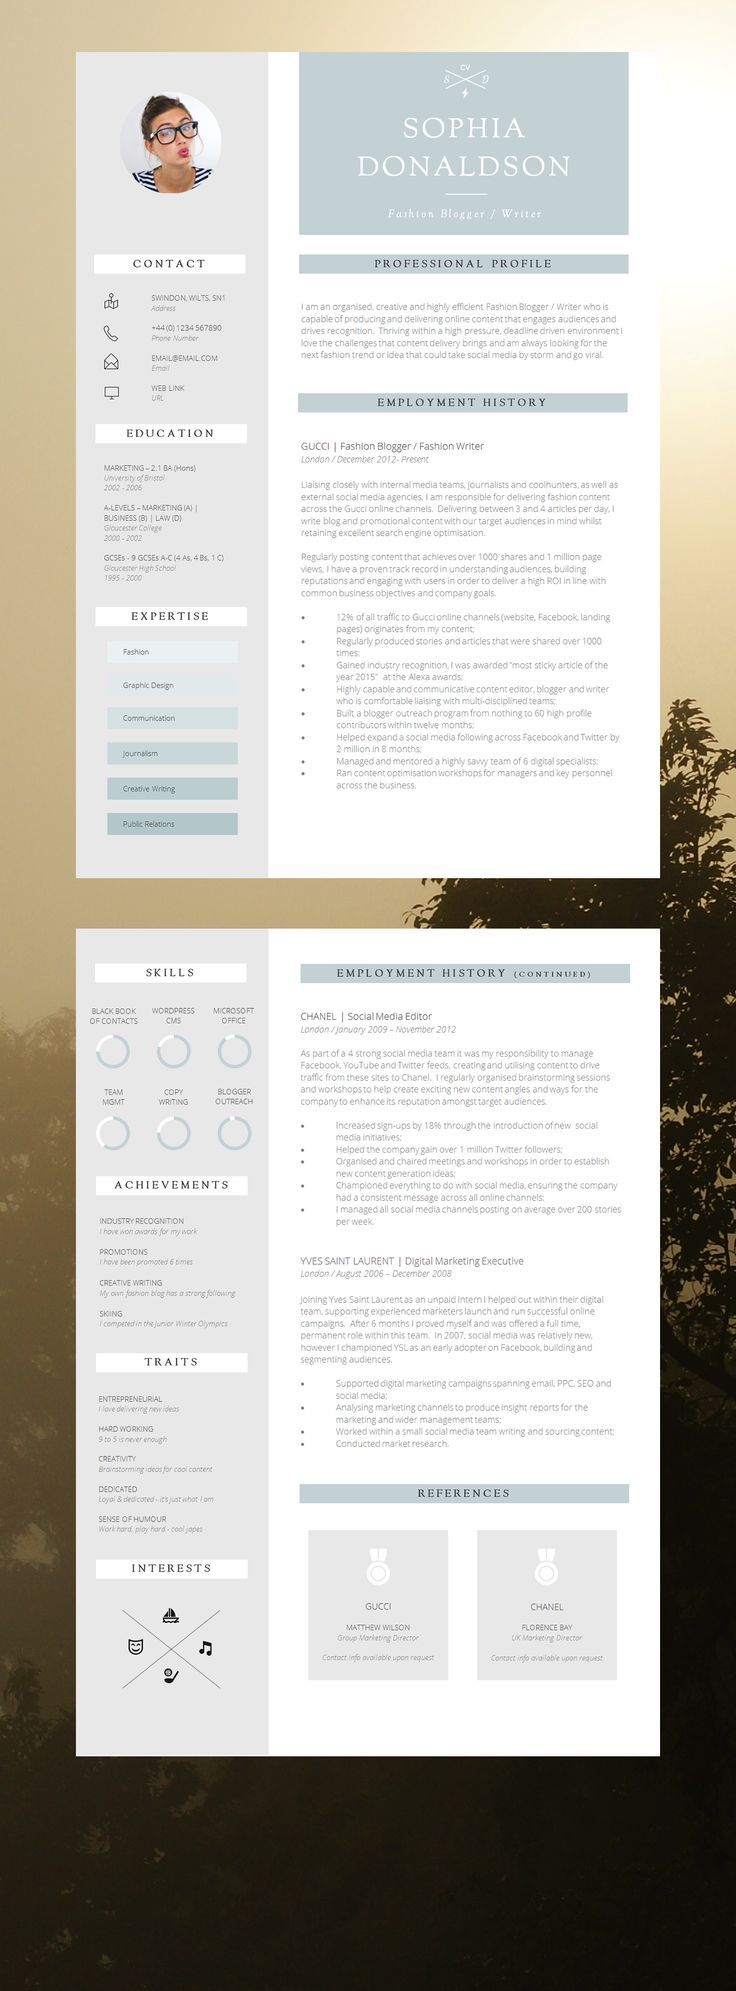 61 Best Cv Design Images On Pinterest Resume Resume Templates